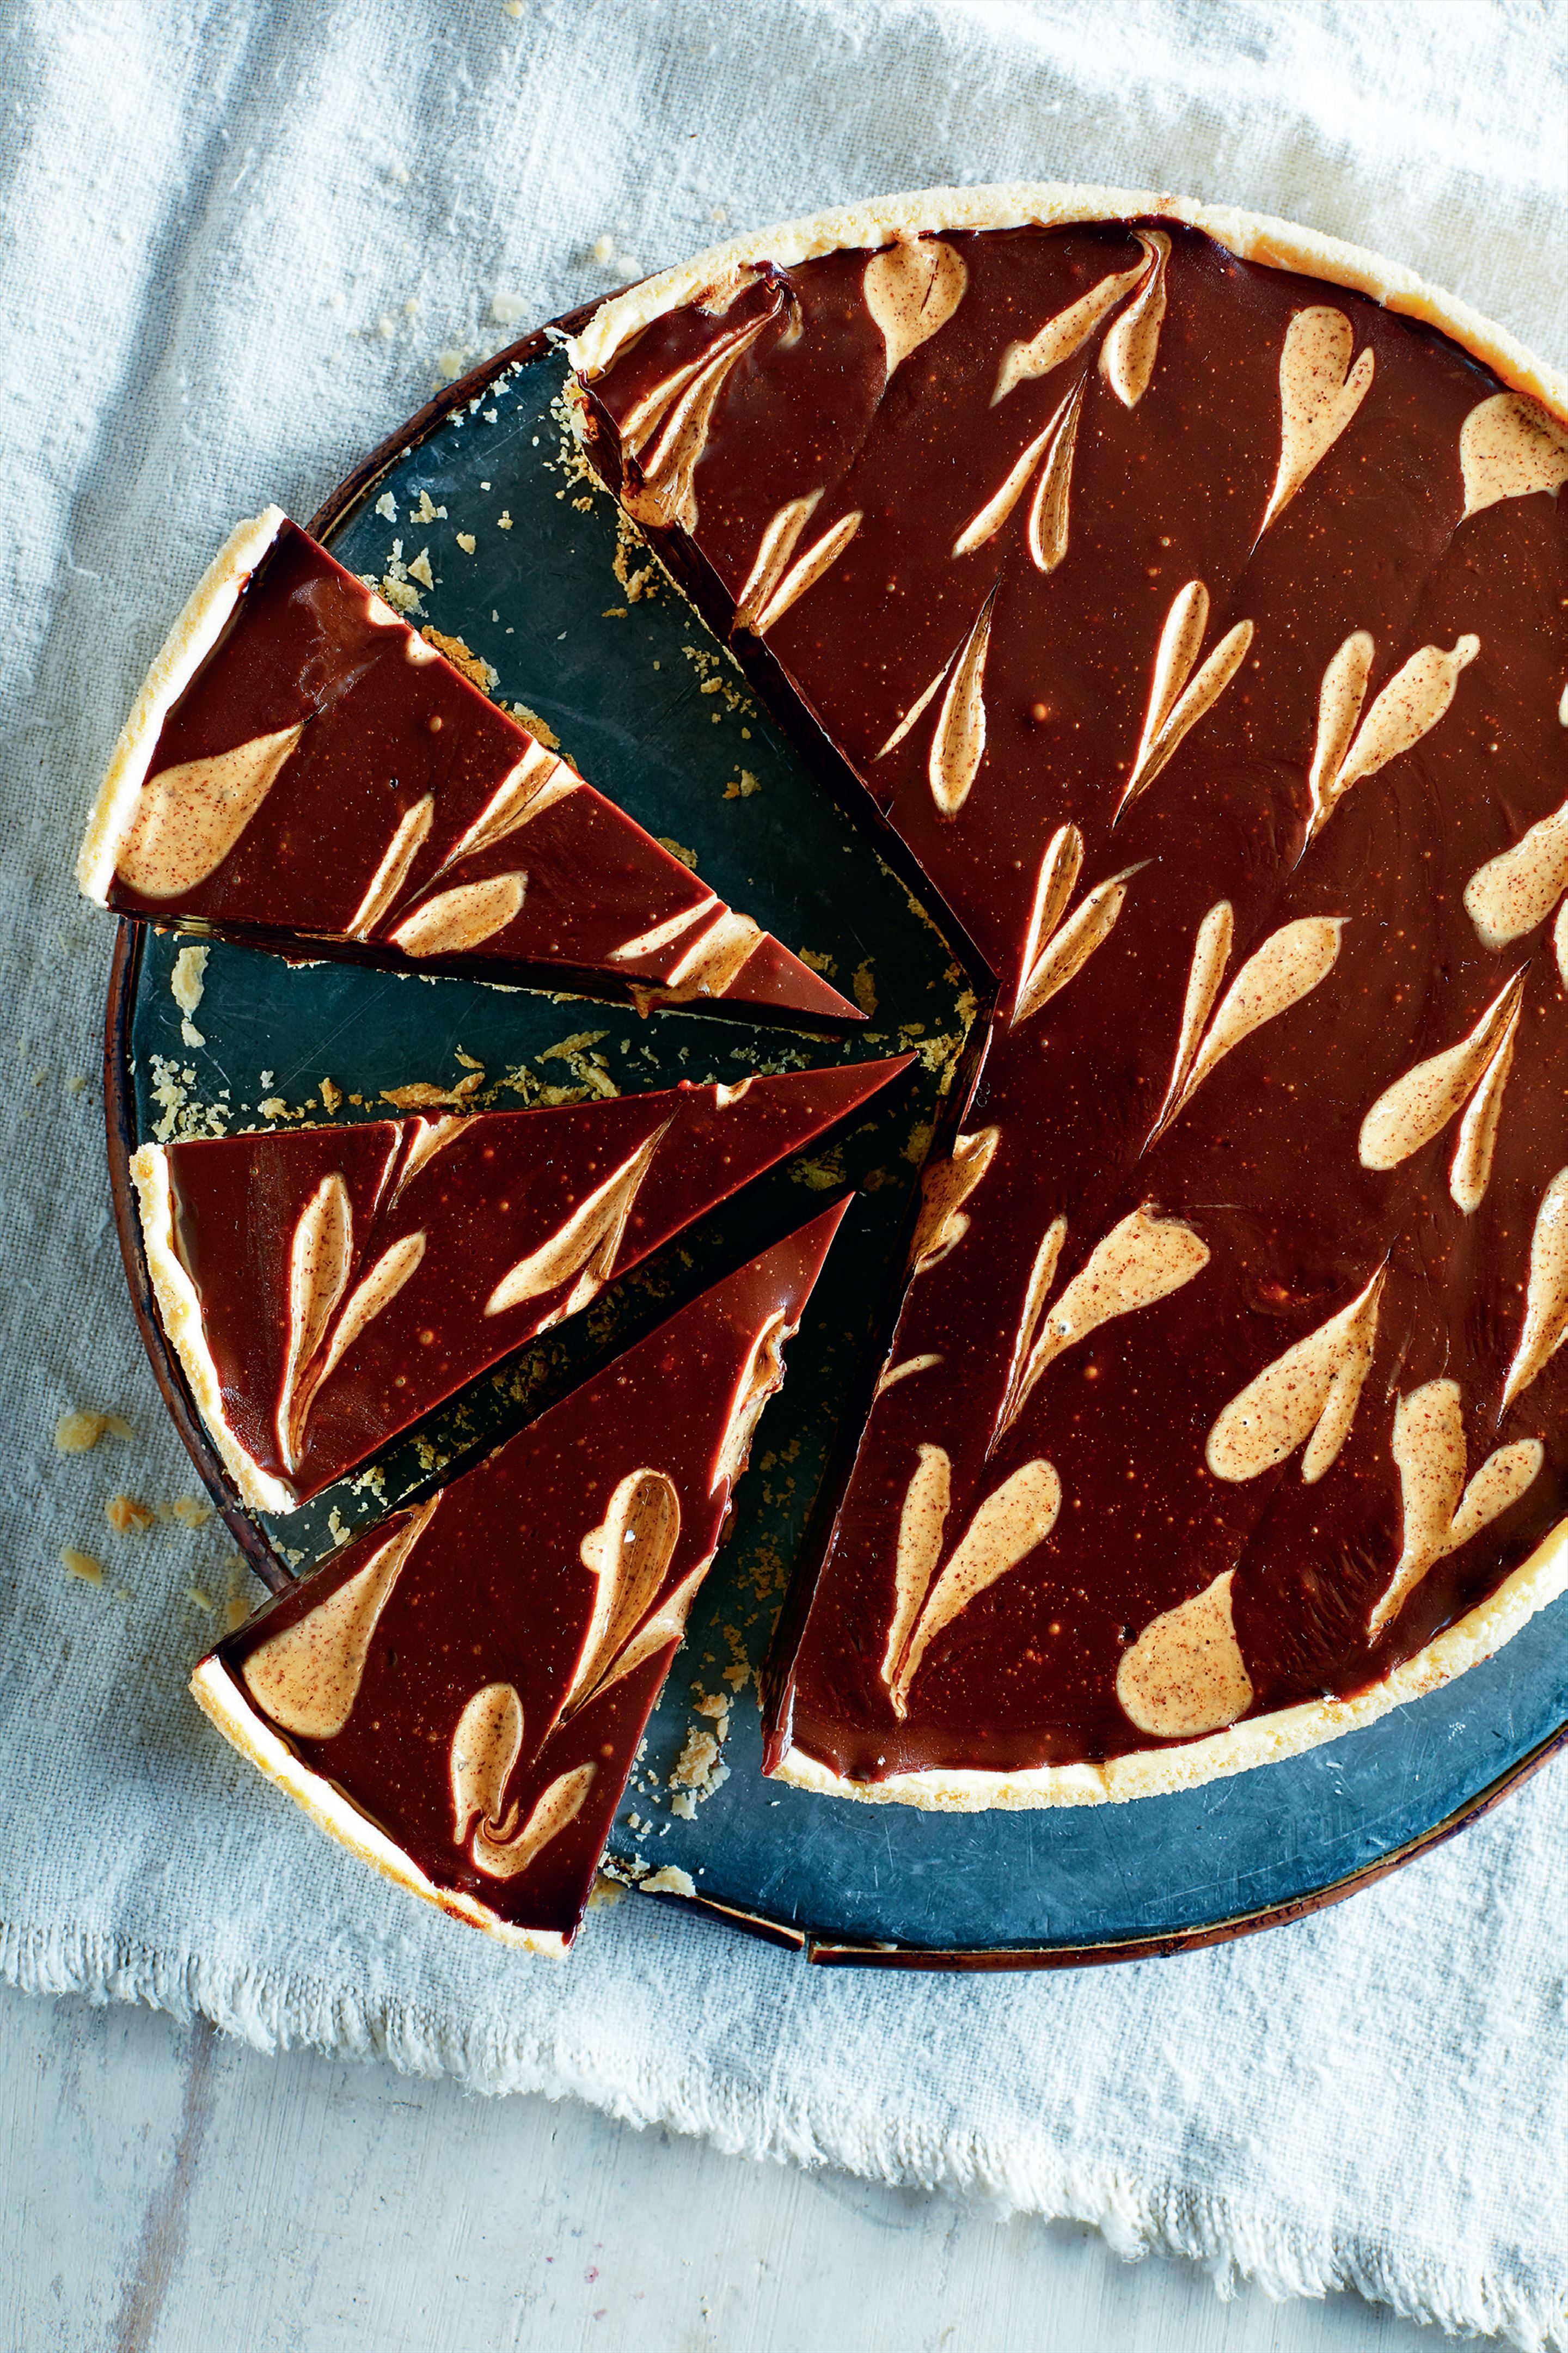 Espresso almond chocolate tart